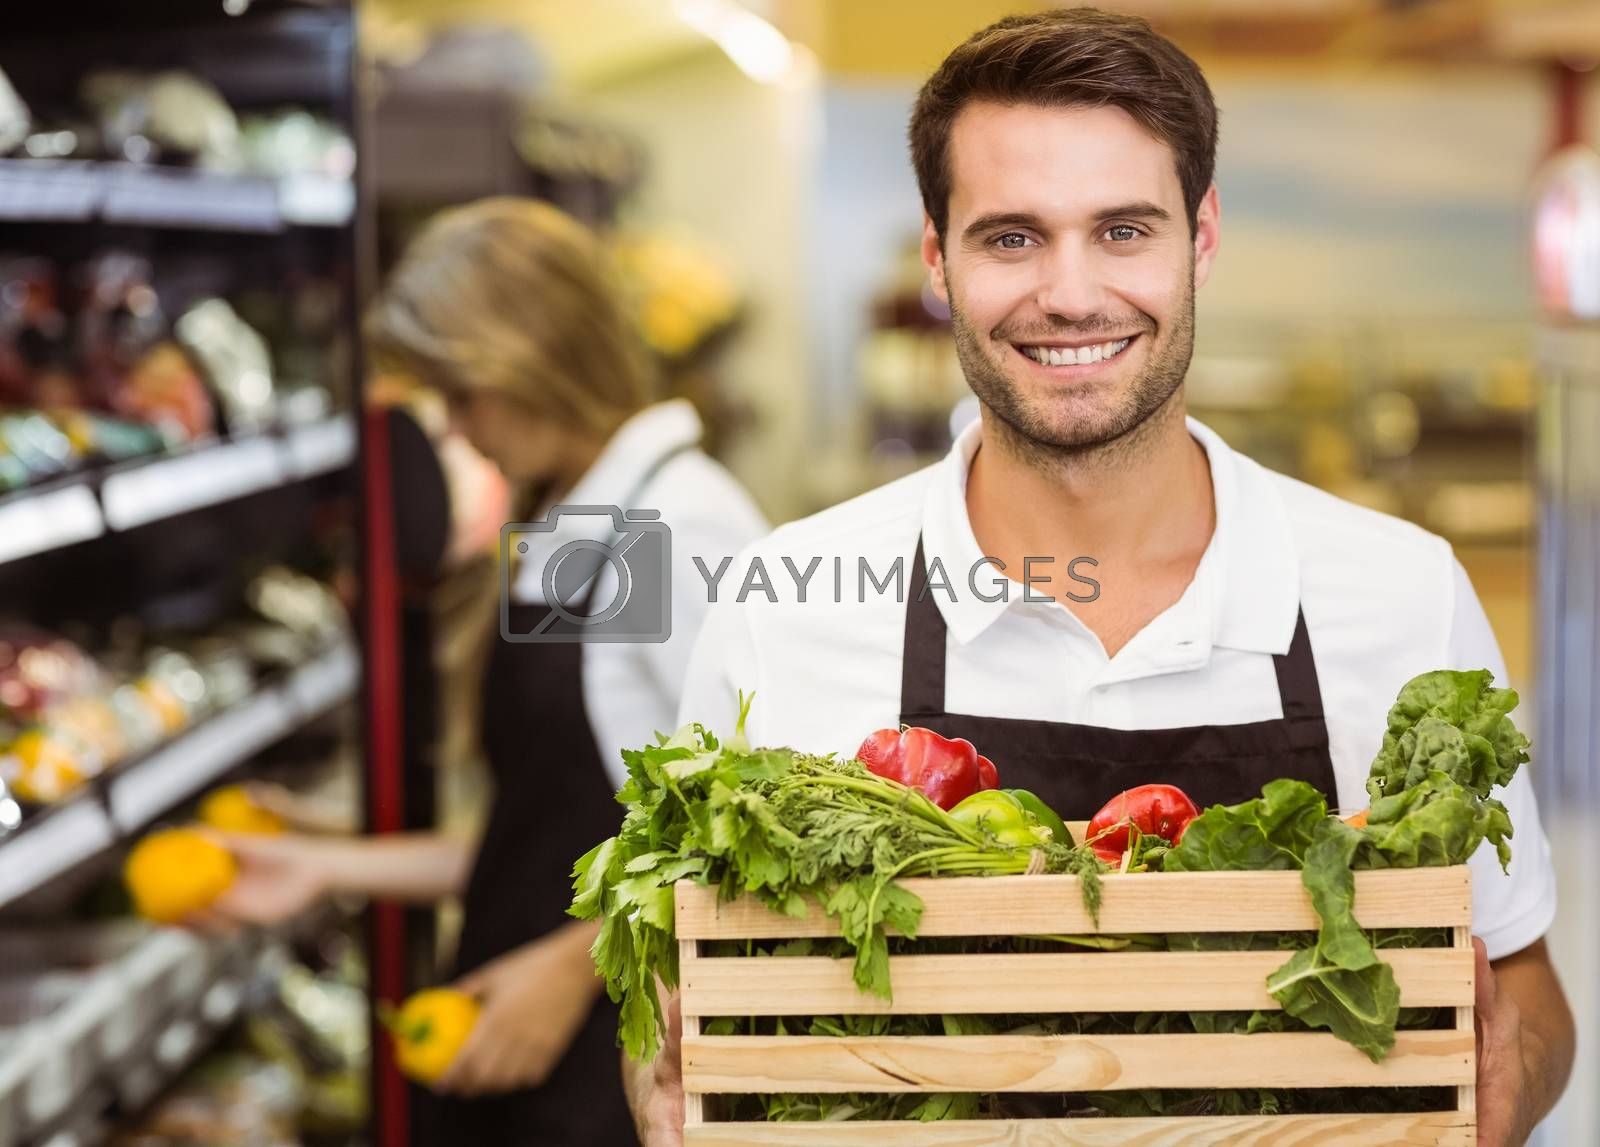 Royalty free image of Portrait of a smiling staff man holding a box of fresh vegetables  by Wavebreakmedia